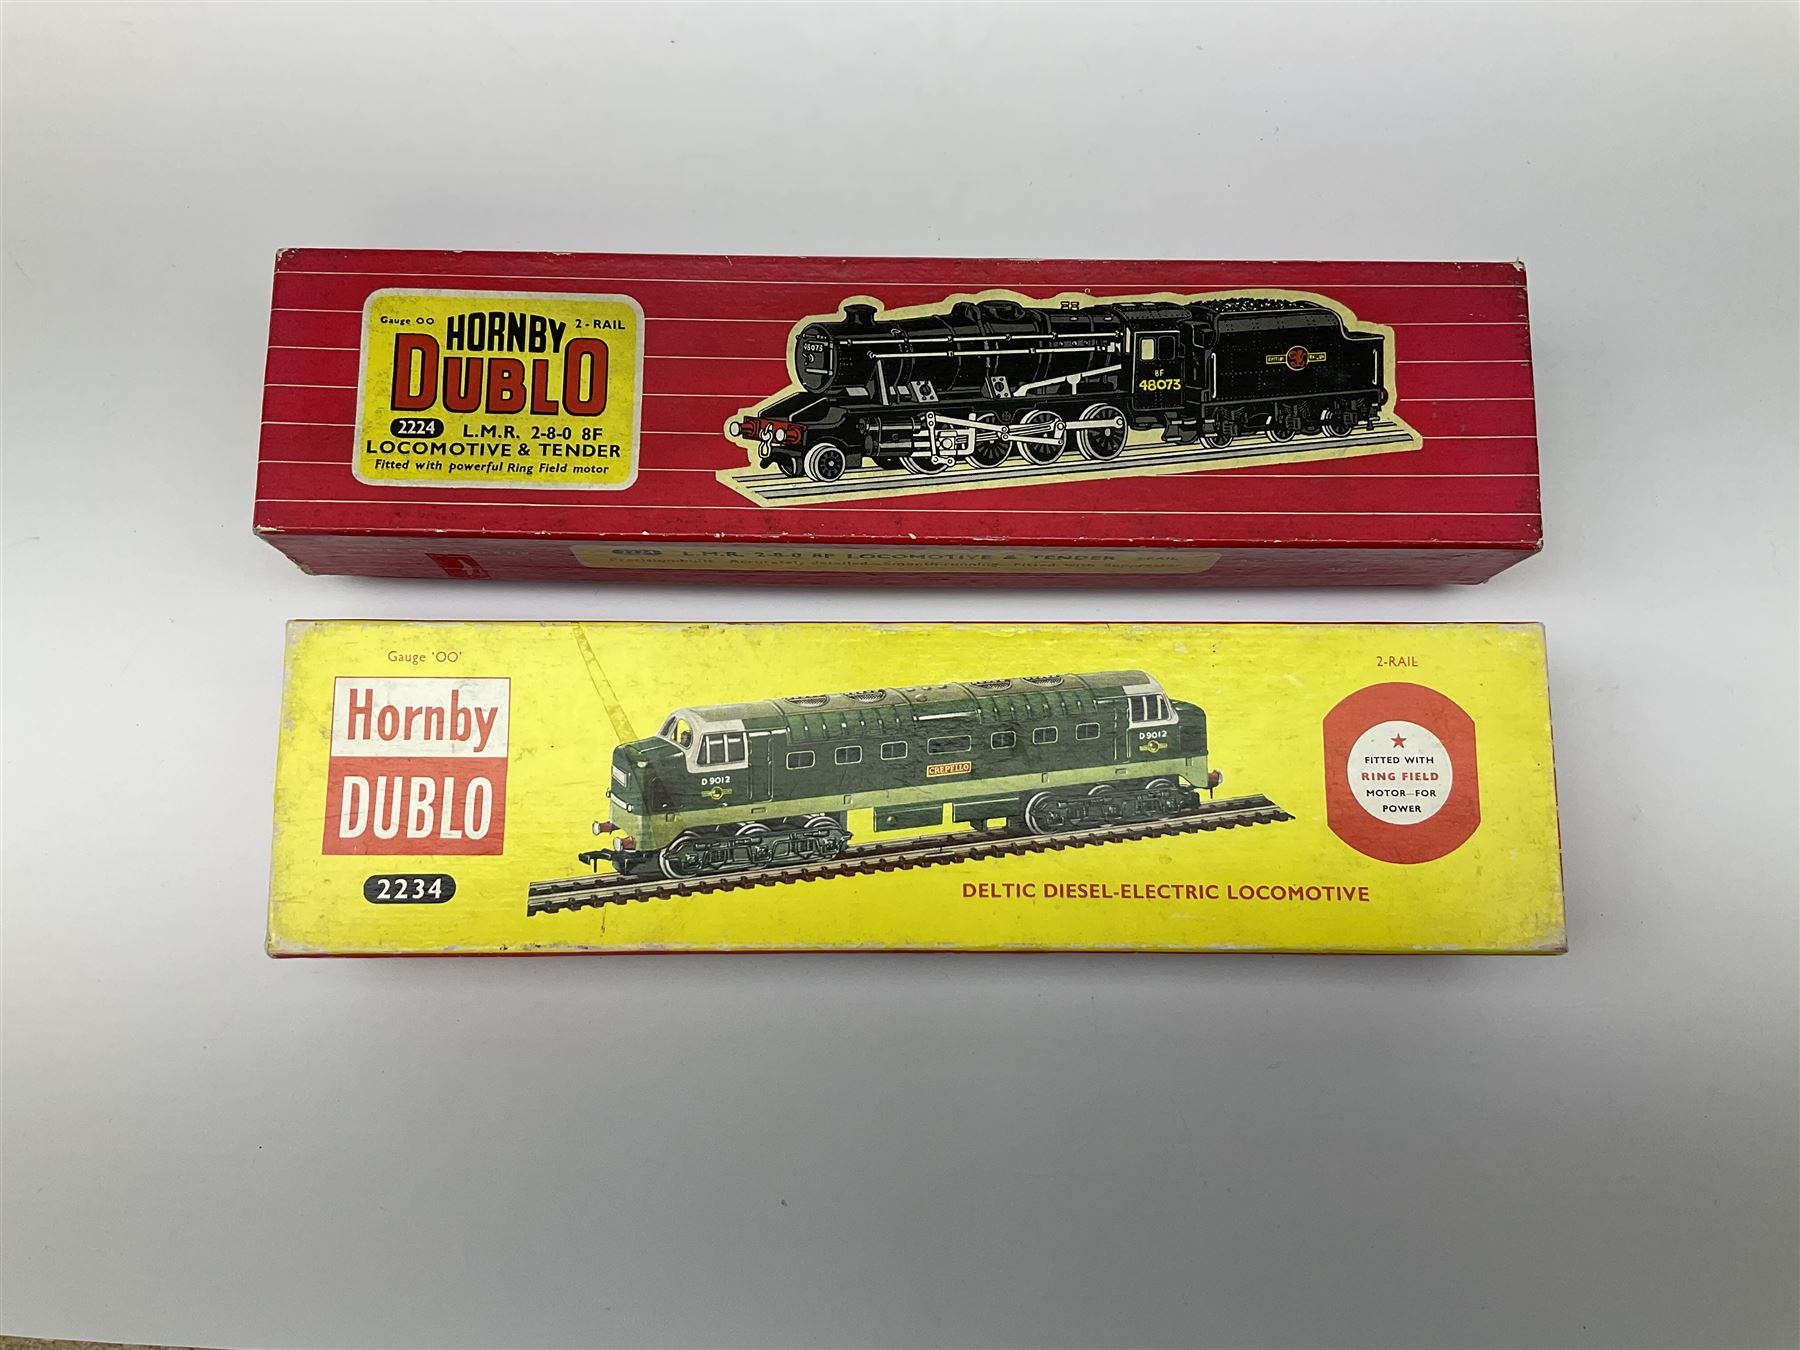 Hornby Dublo - two-rail 2224 Class 8F 2-8-0 locomotive No.48073 with instructions; and 2234 Deltic T - Image 7 of 7